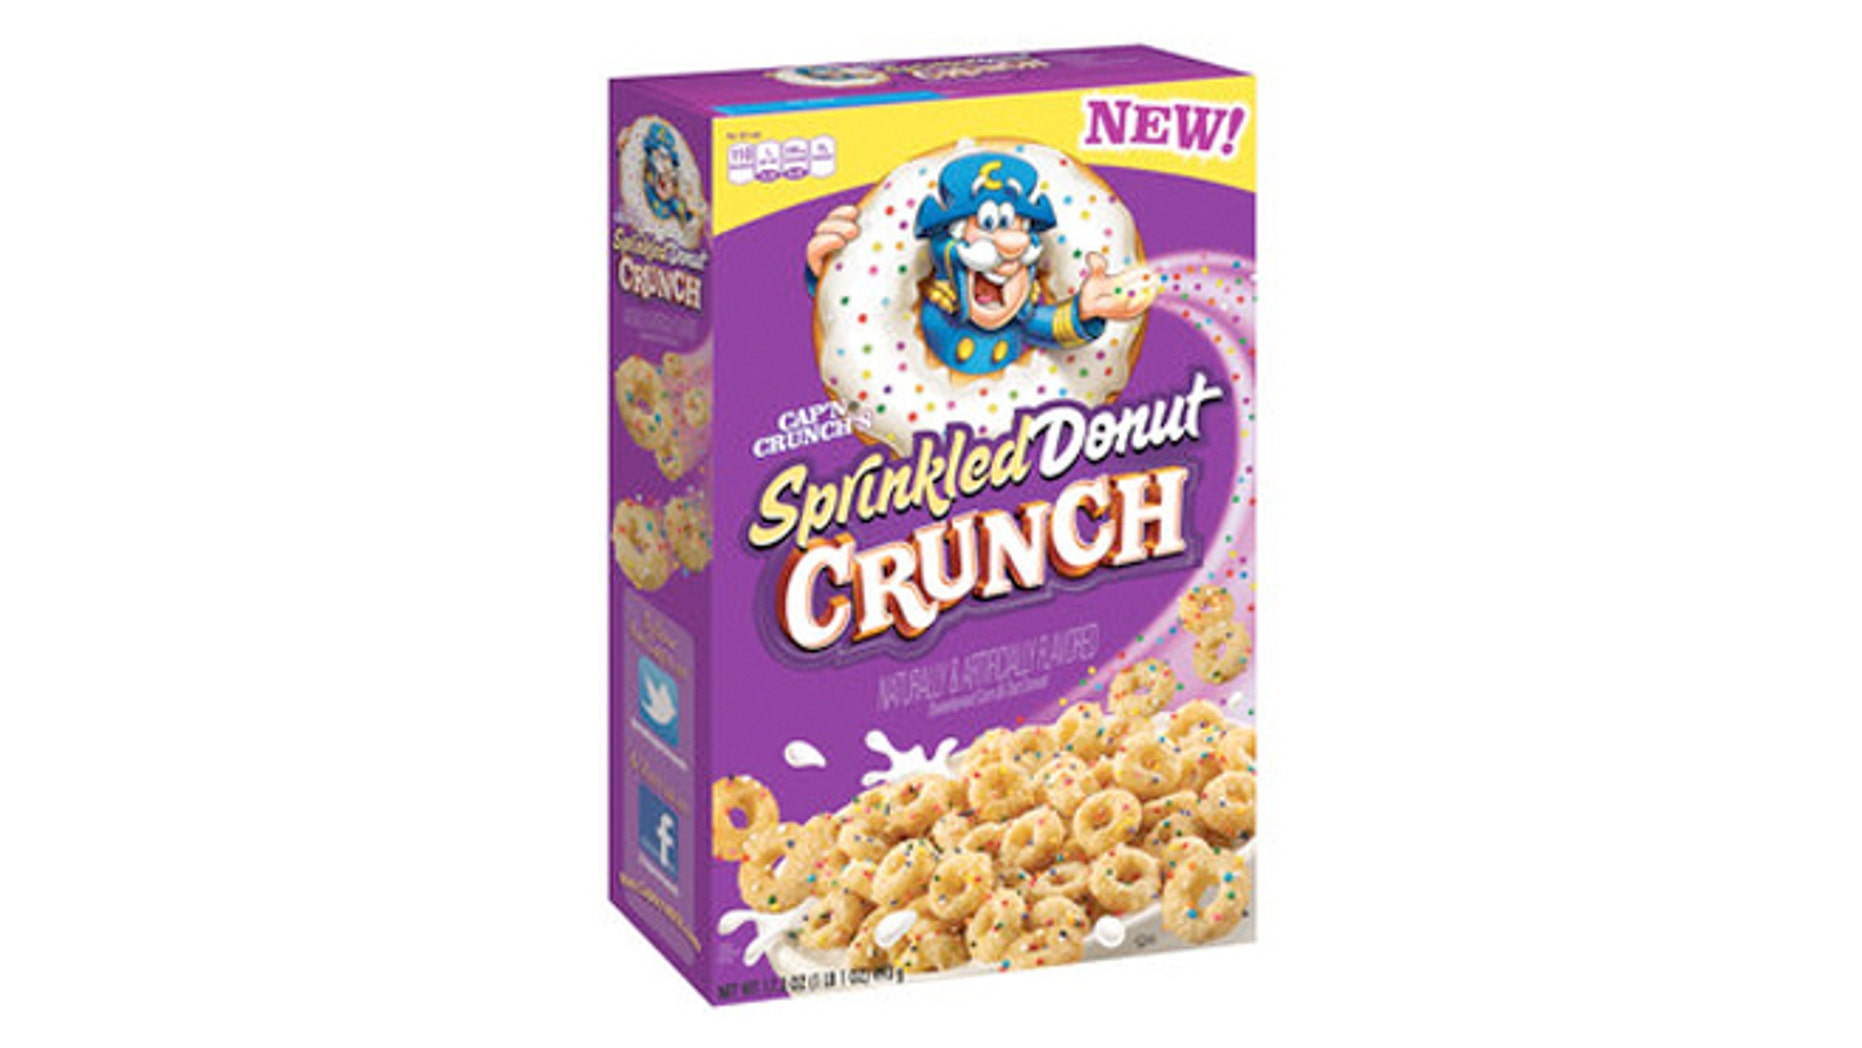 The Cap'n has got a new flavor: Sprinkled Donut Crunch.